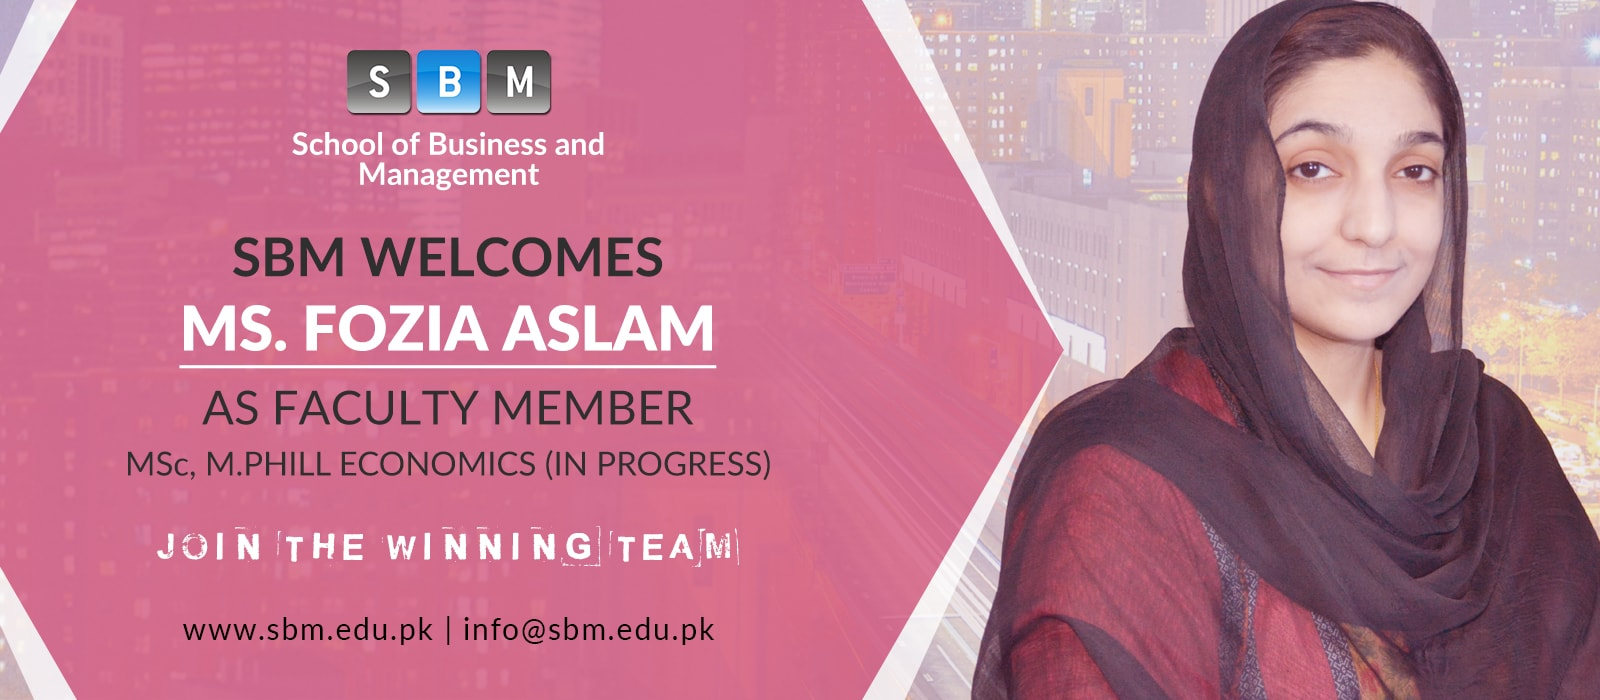 Ms Fozia Aslam has joined SBM as Faculty Member